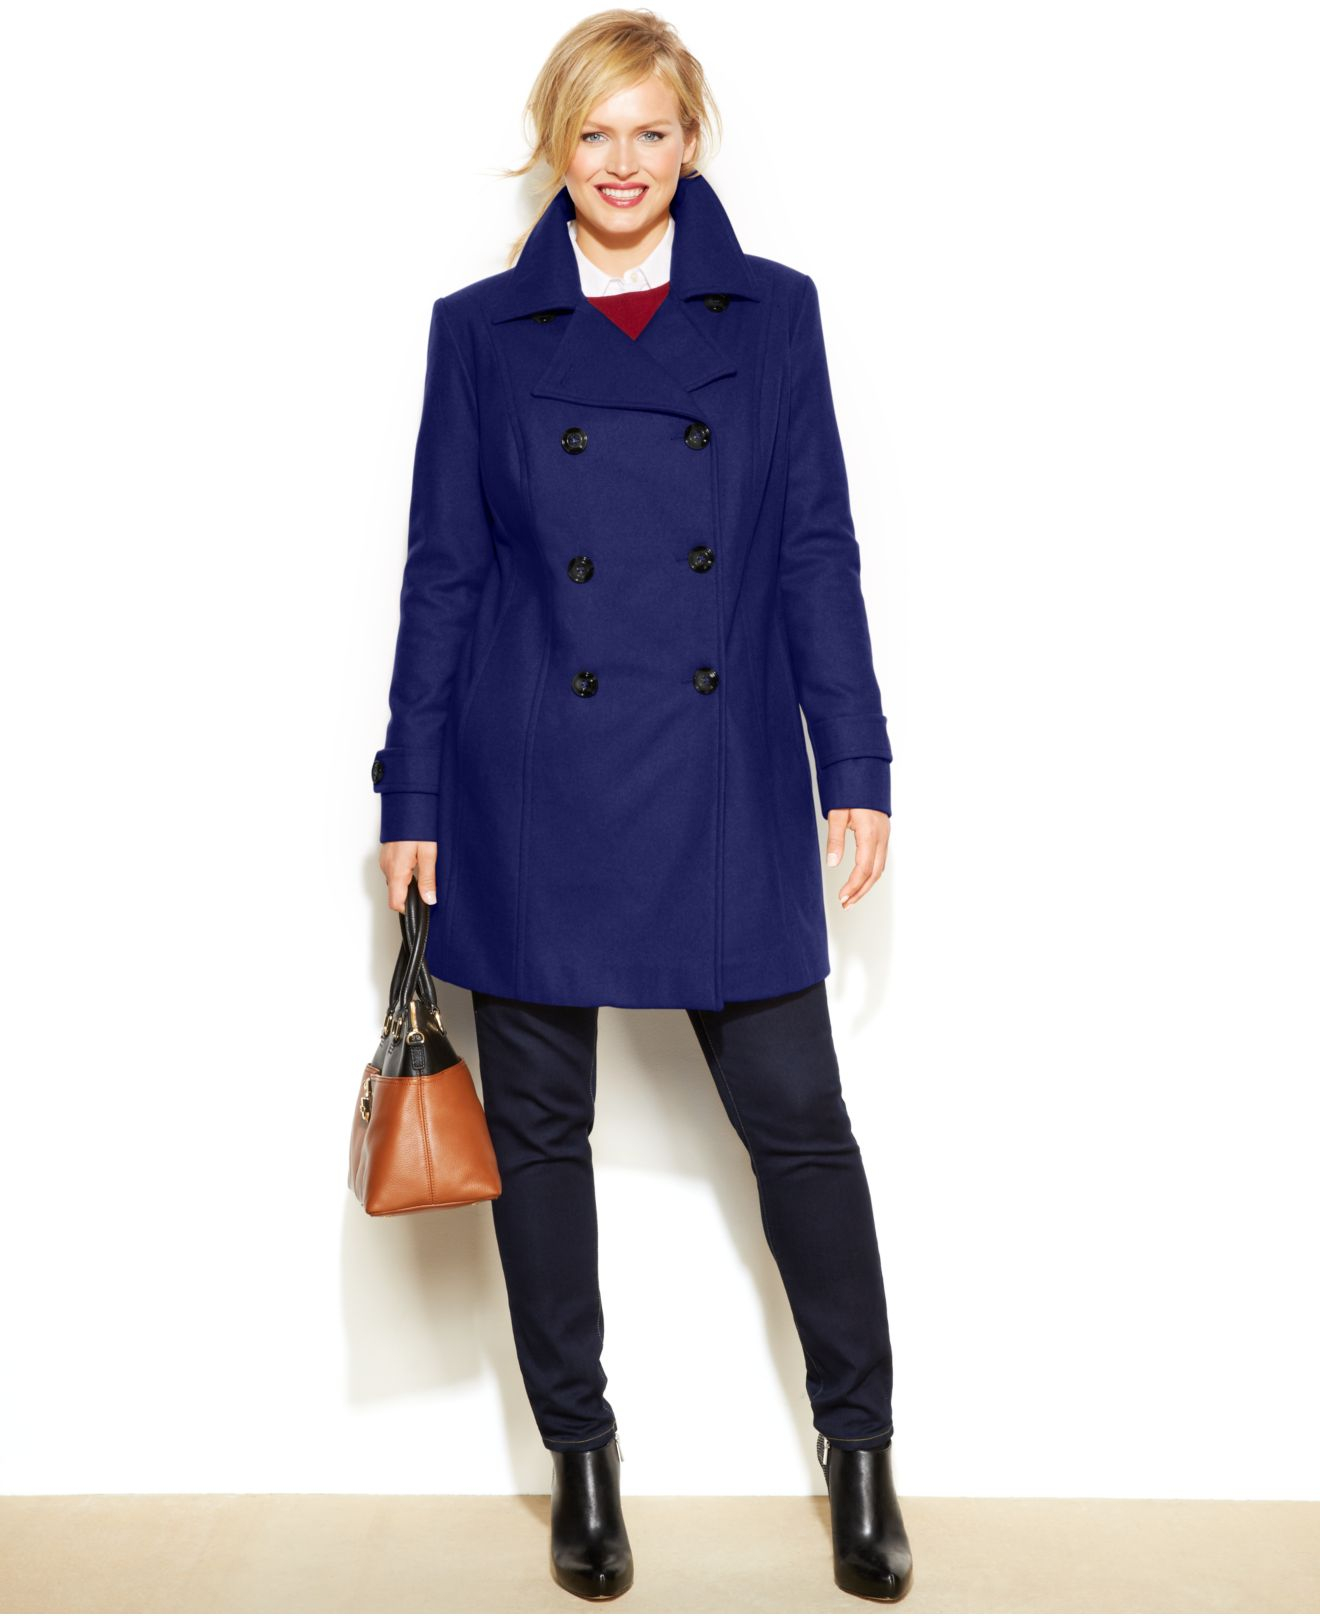 Free shipping and returns on women's business casual clothing at robyeread.ml Shop for business suits, blazers, dresses and more. Check out our entire collection.